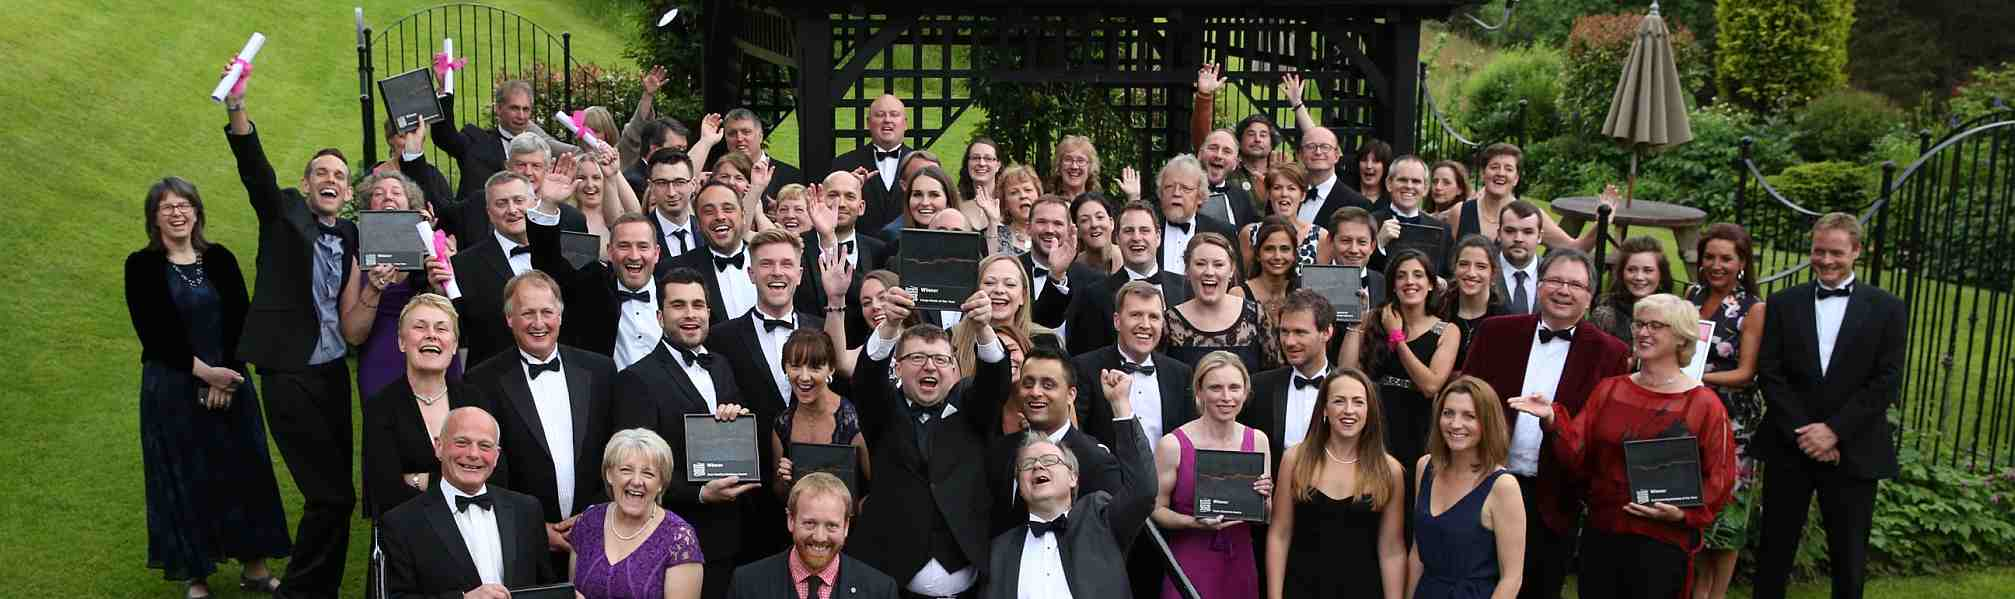 Cumbria Tourism Awards 2015 Picture by Steve Barber